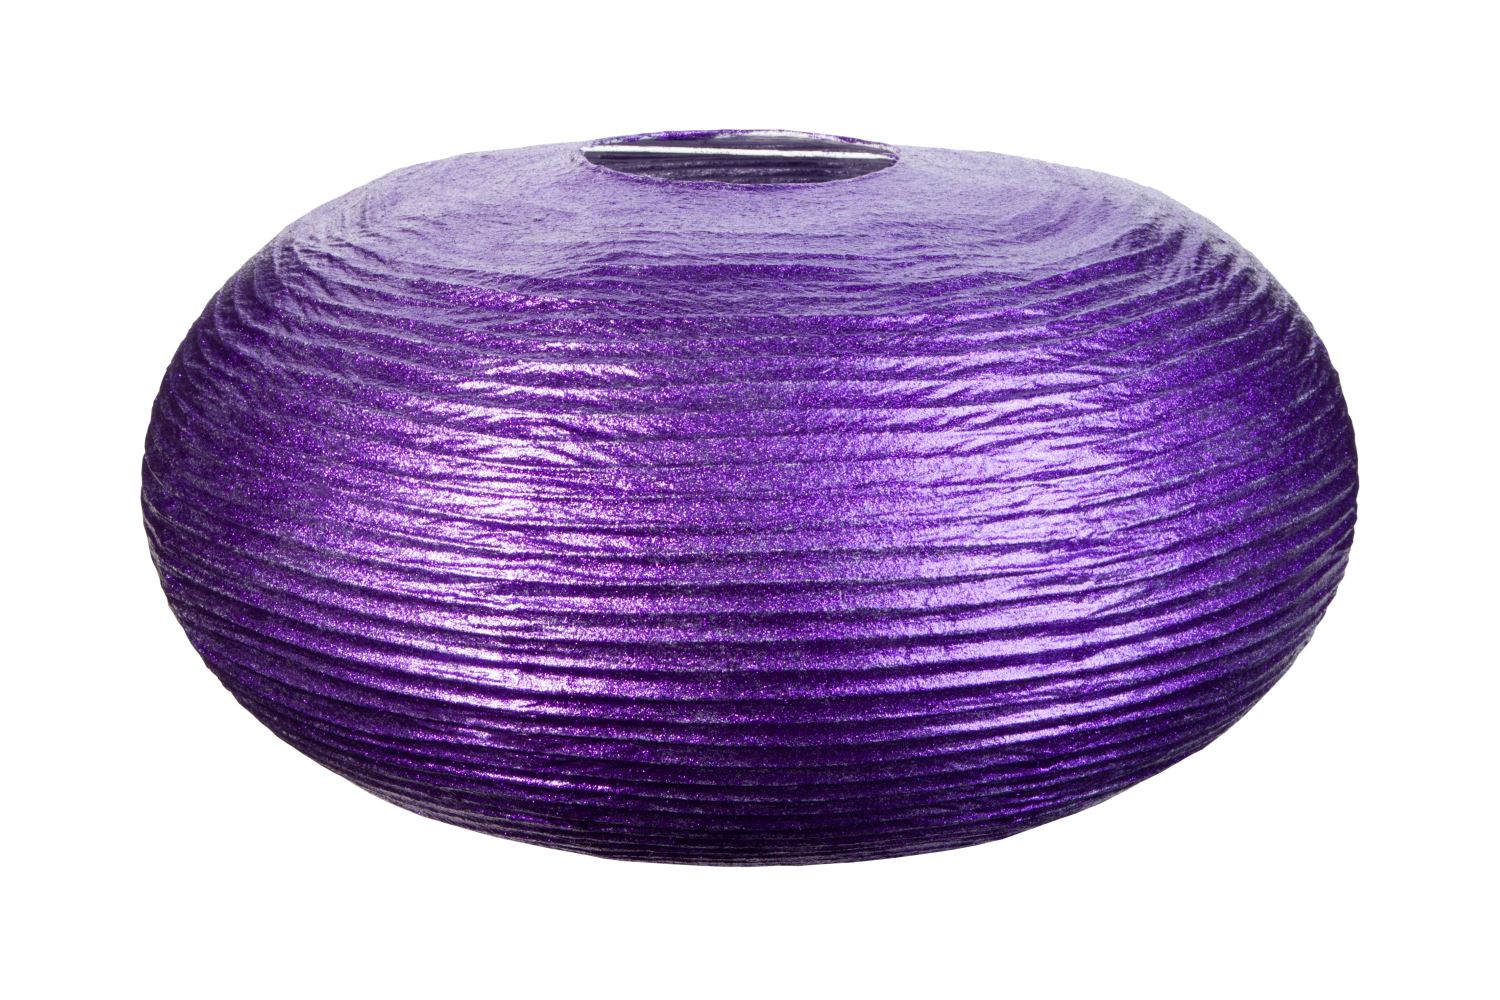 Picture of Dazzling Glitter Brush-On Fabric Paint Dazzling Amethyst 2 oz.